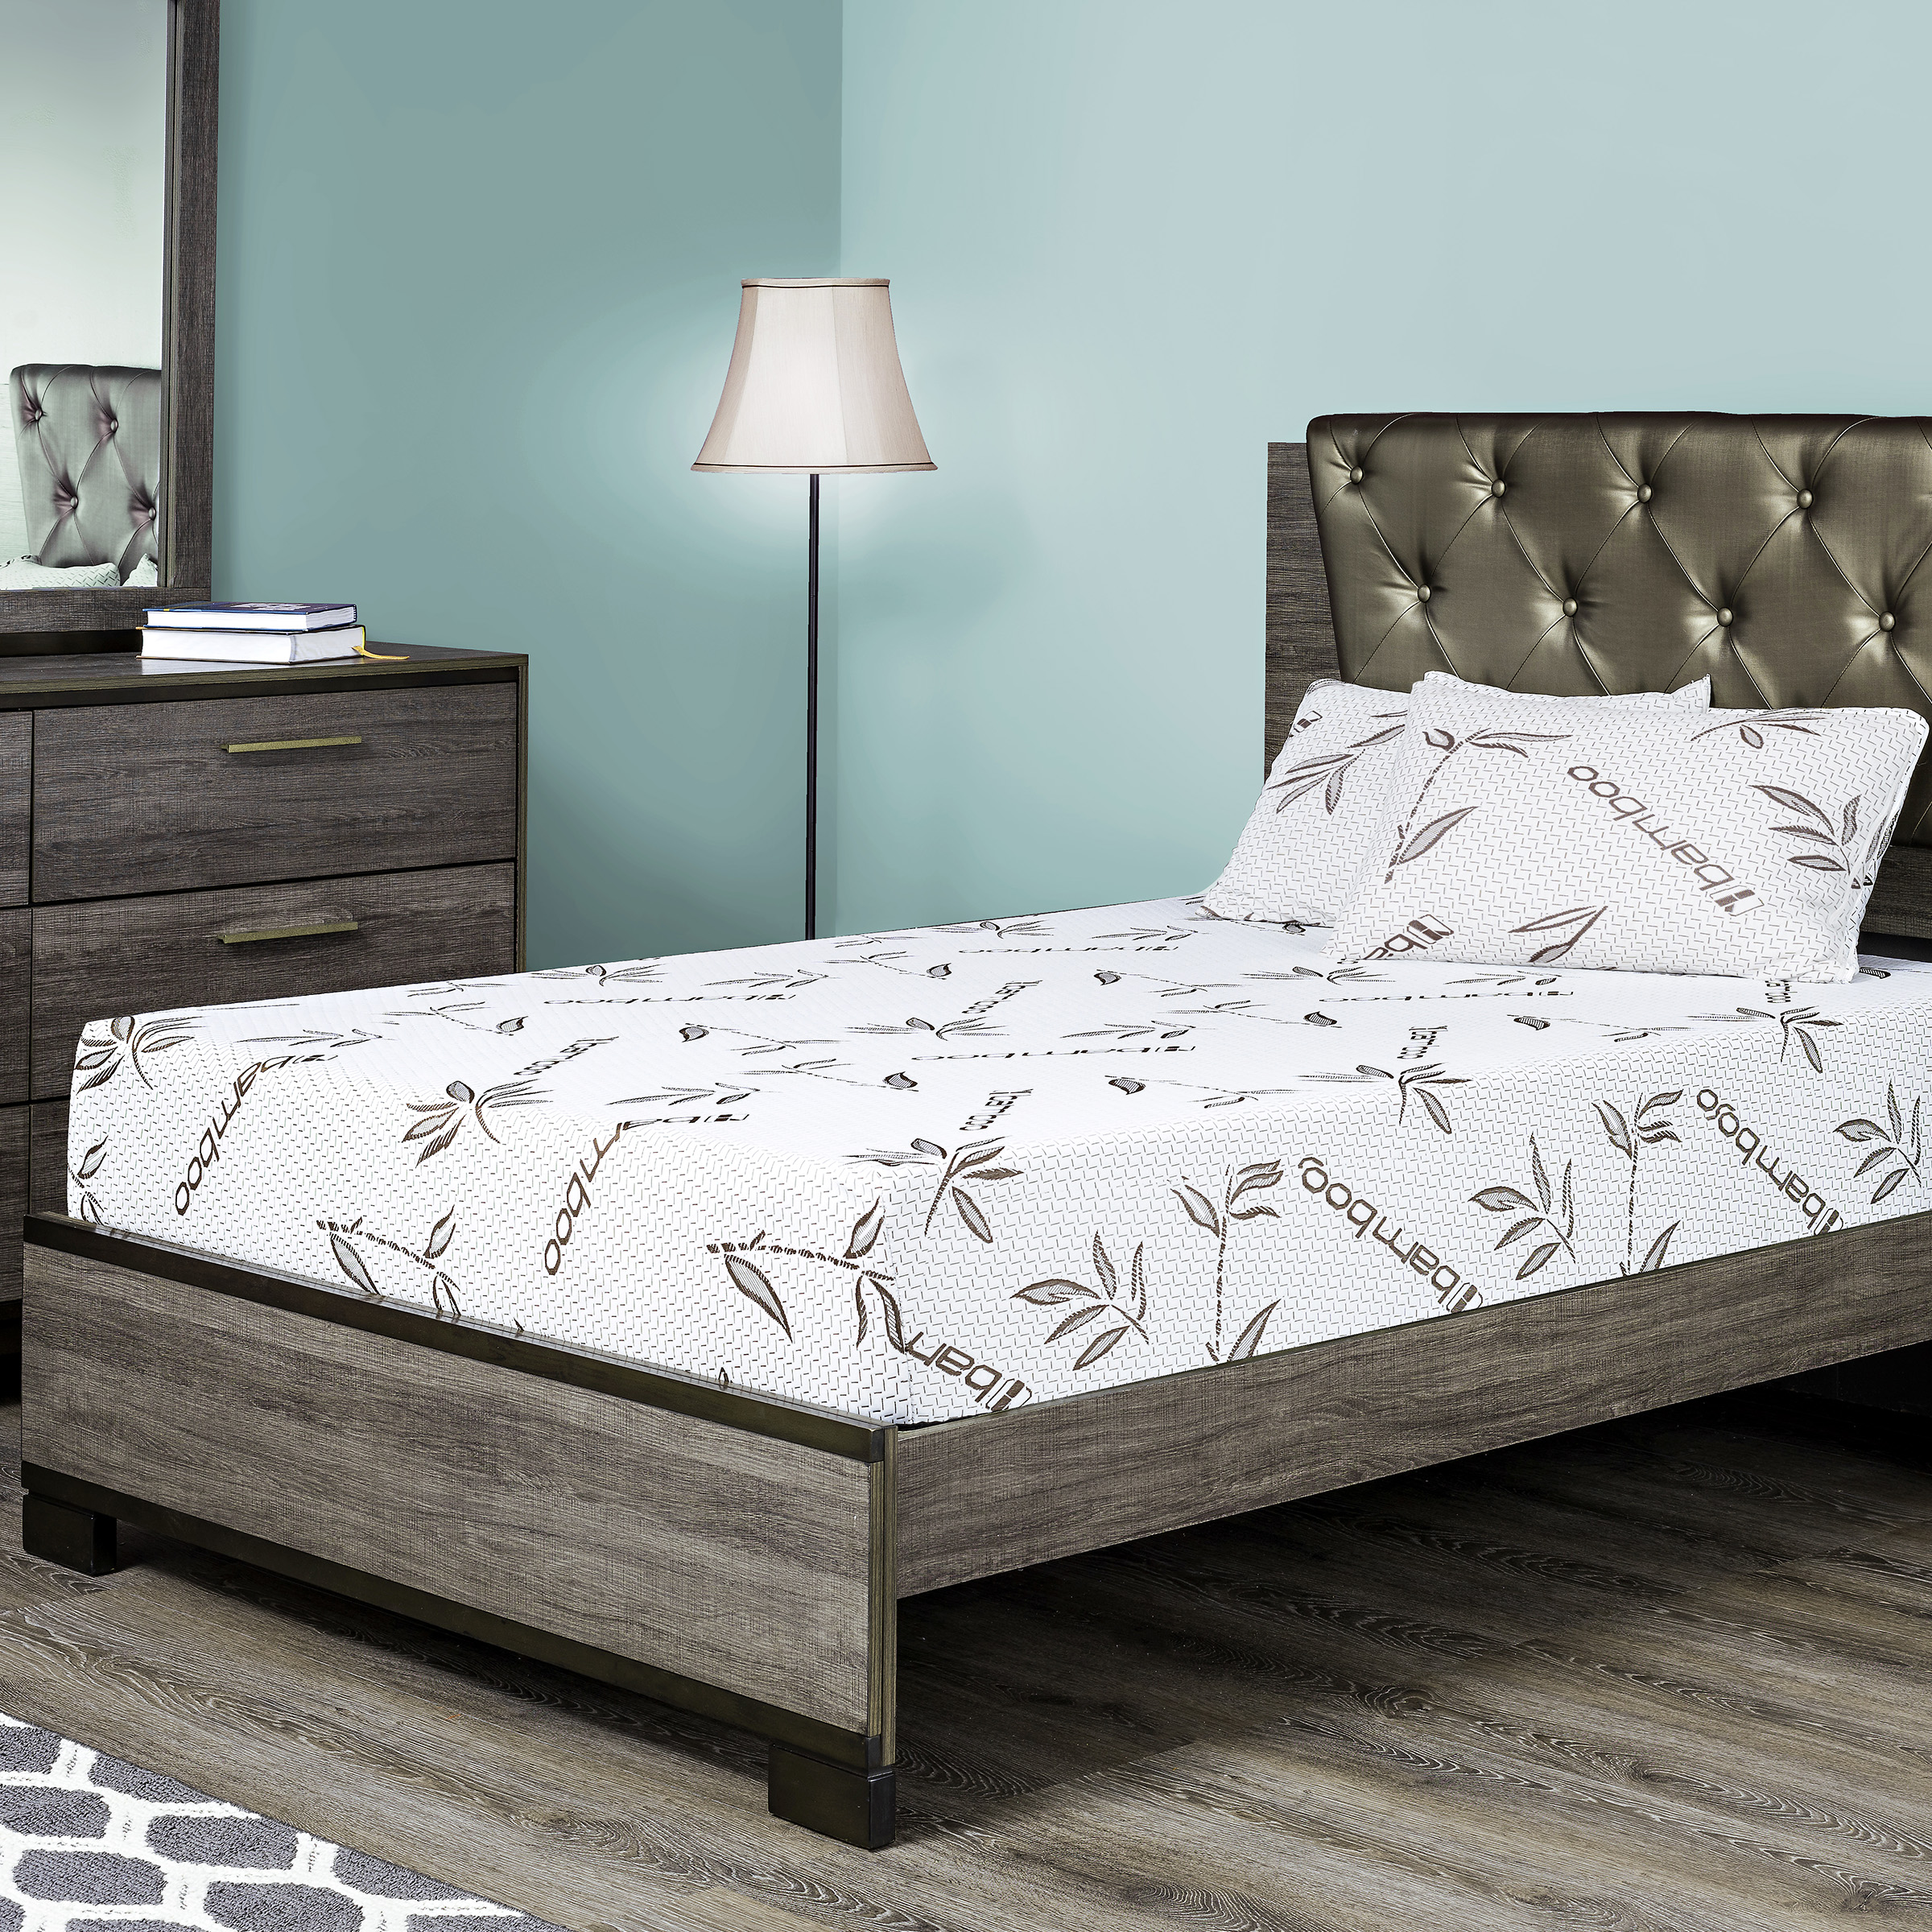 Cal King Size Mattress Bed Linen Cal King Bed Sheet Size King Size Bed Sheet Dimensions In Cms